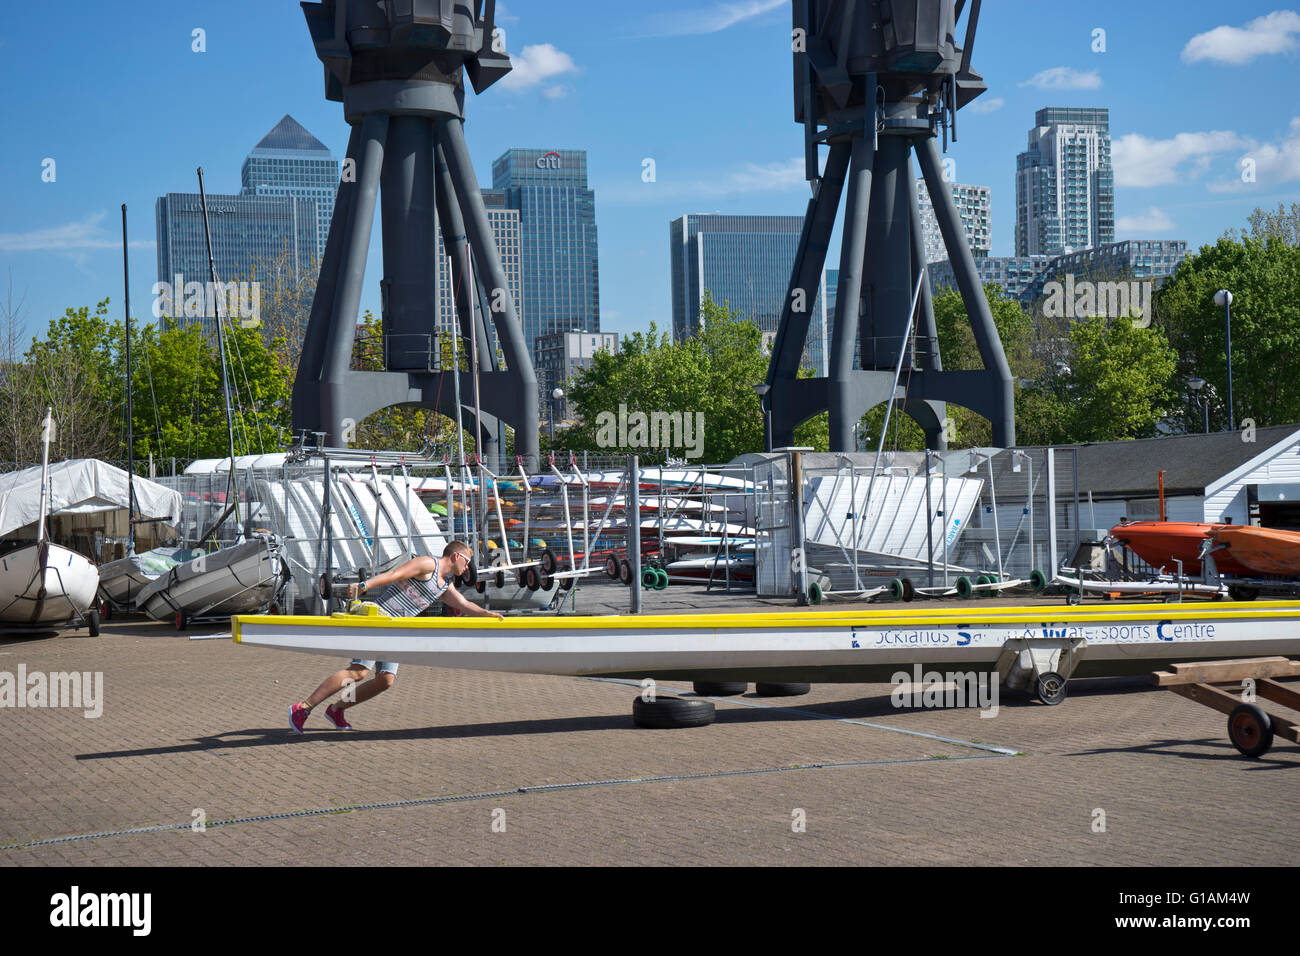 Man repairing boat at the Docklands Sailing and Watersports Centre near Canary Wharf, London, UK - Stock Image